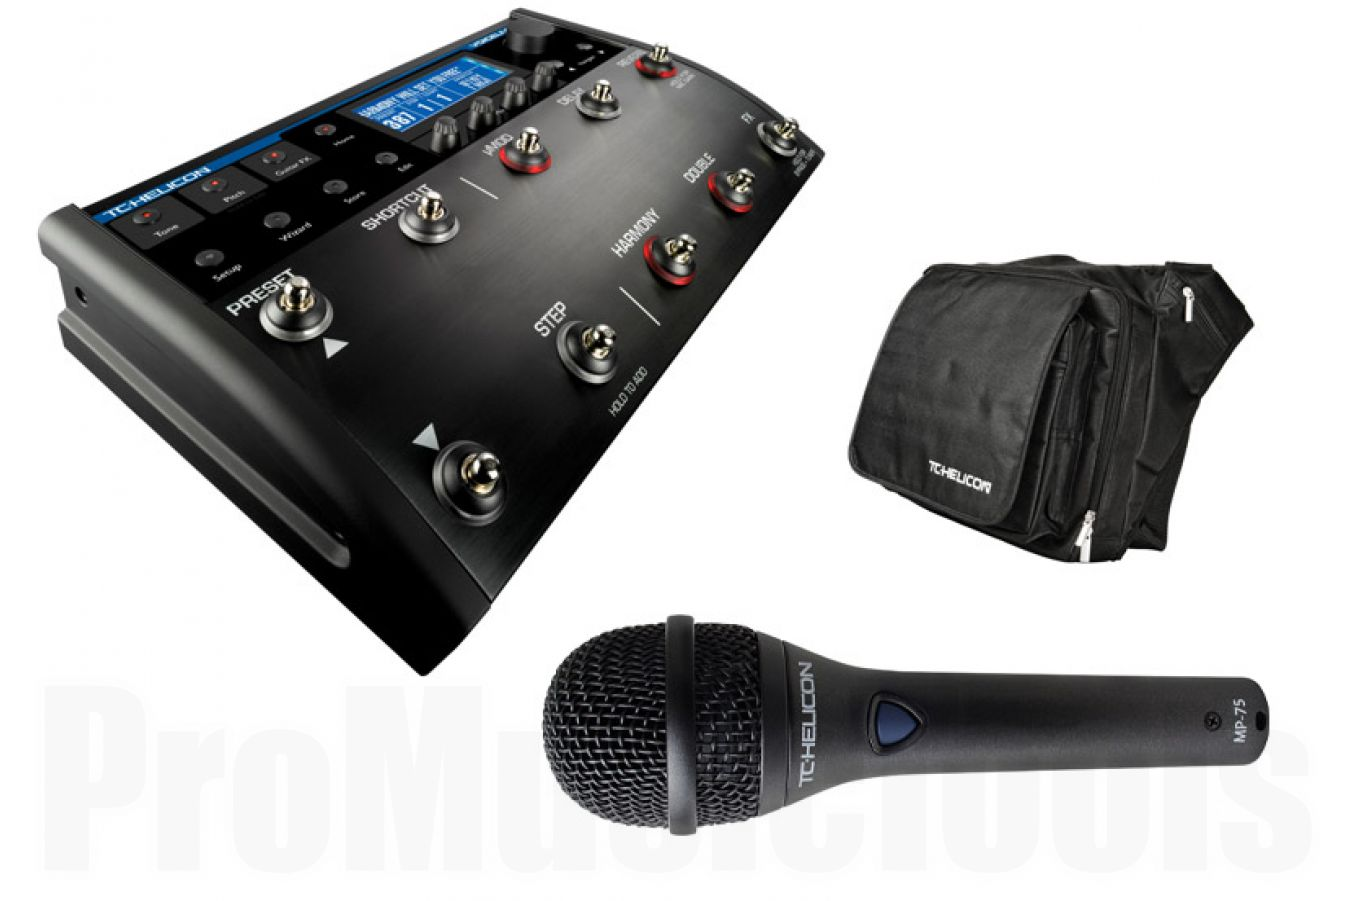 TC Helicon Singers Pro FX Gig Bundle - incl. VoiceLive 2, MP-75 & Gigbag